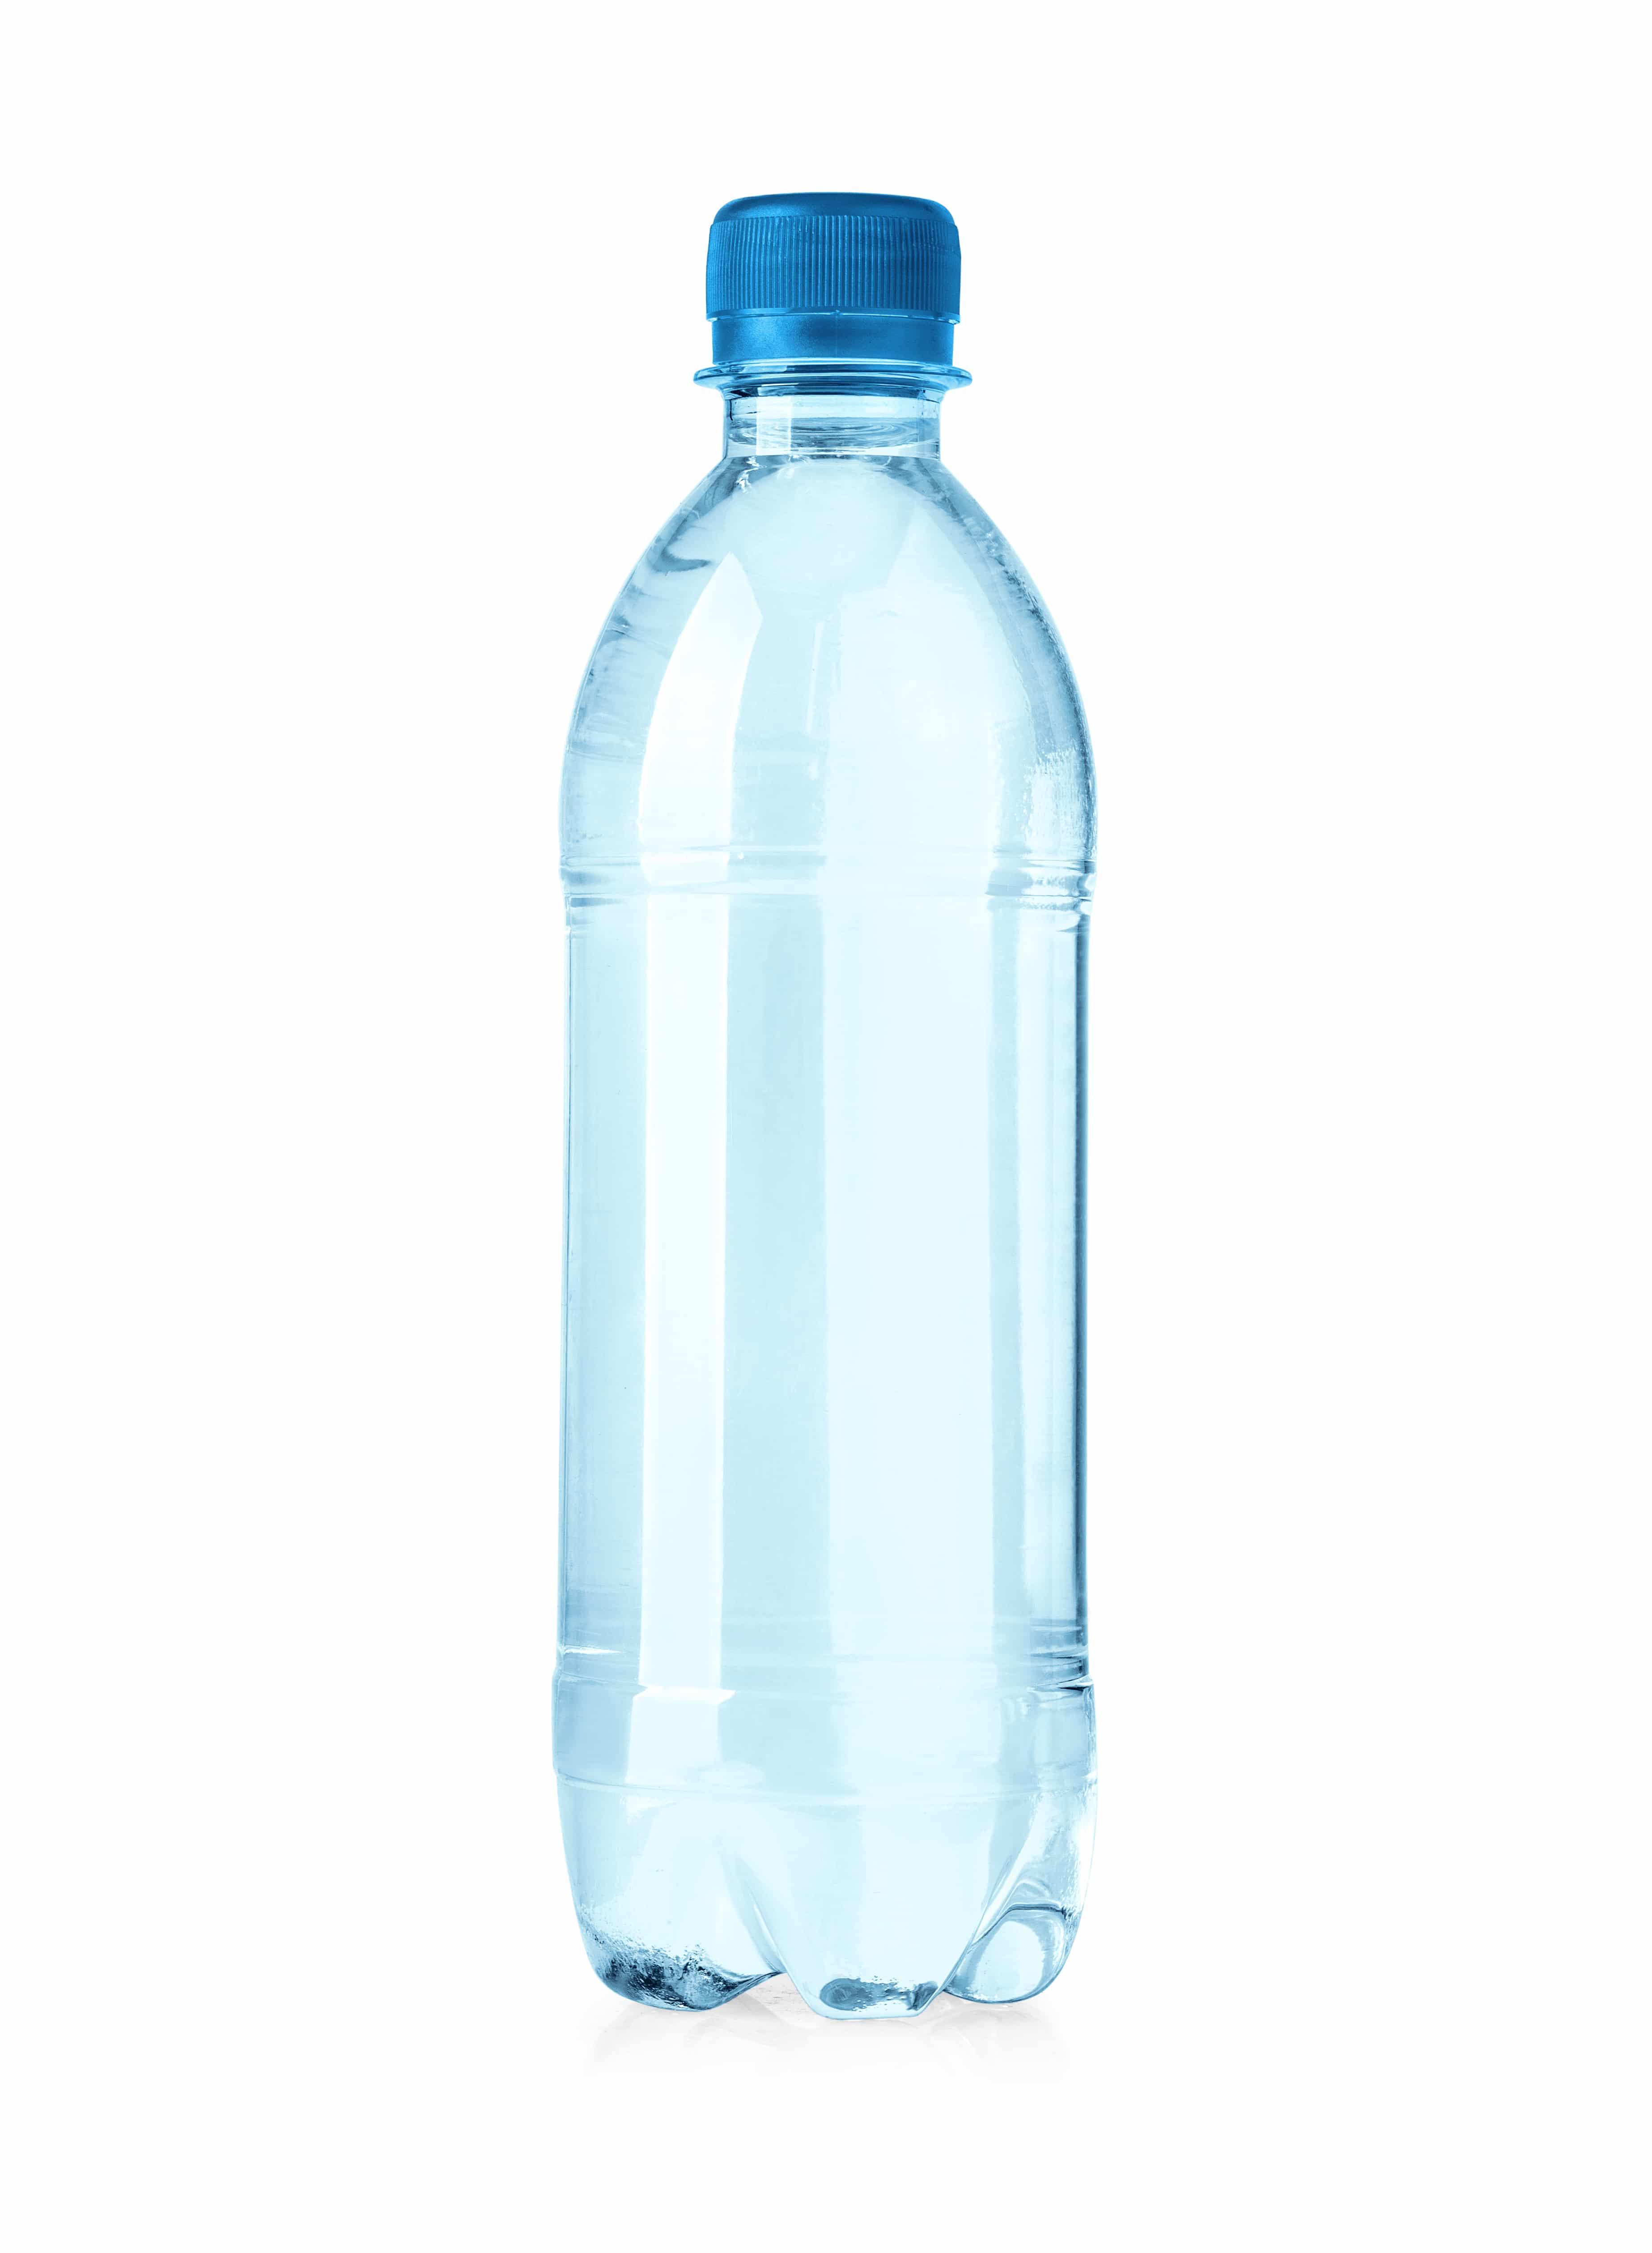 plastic water bottles isolated on white background with clipping path